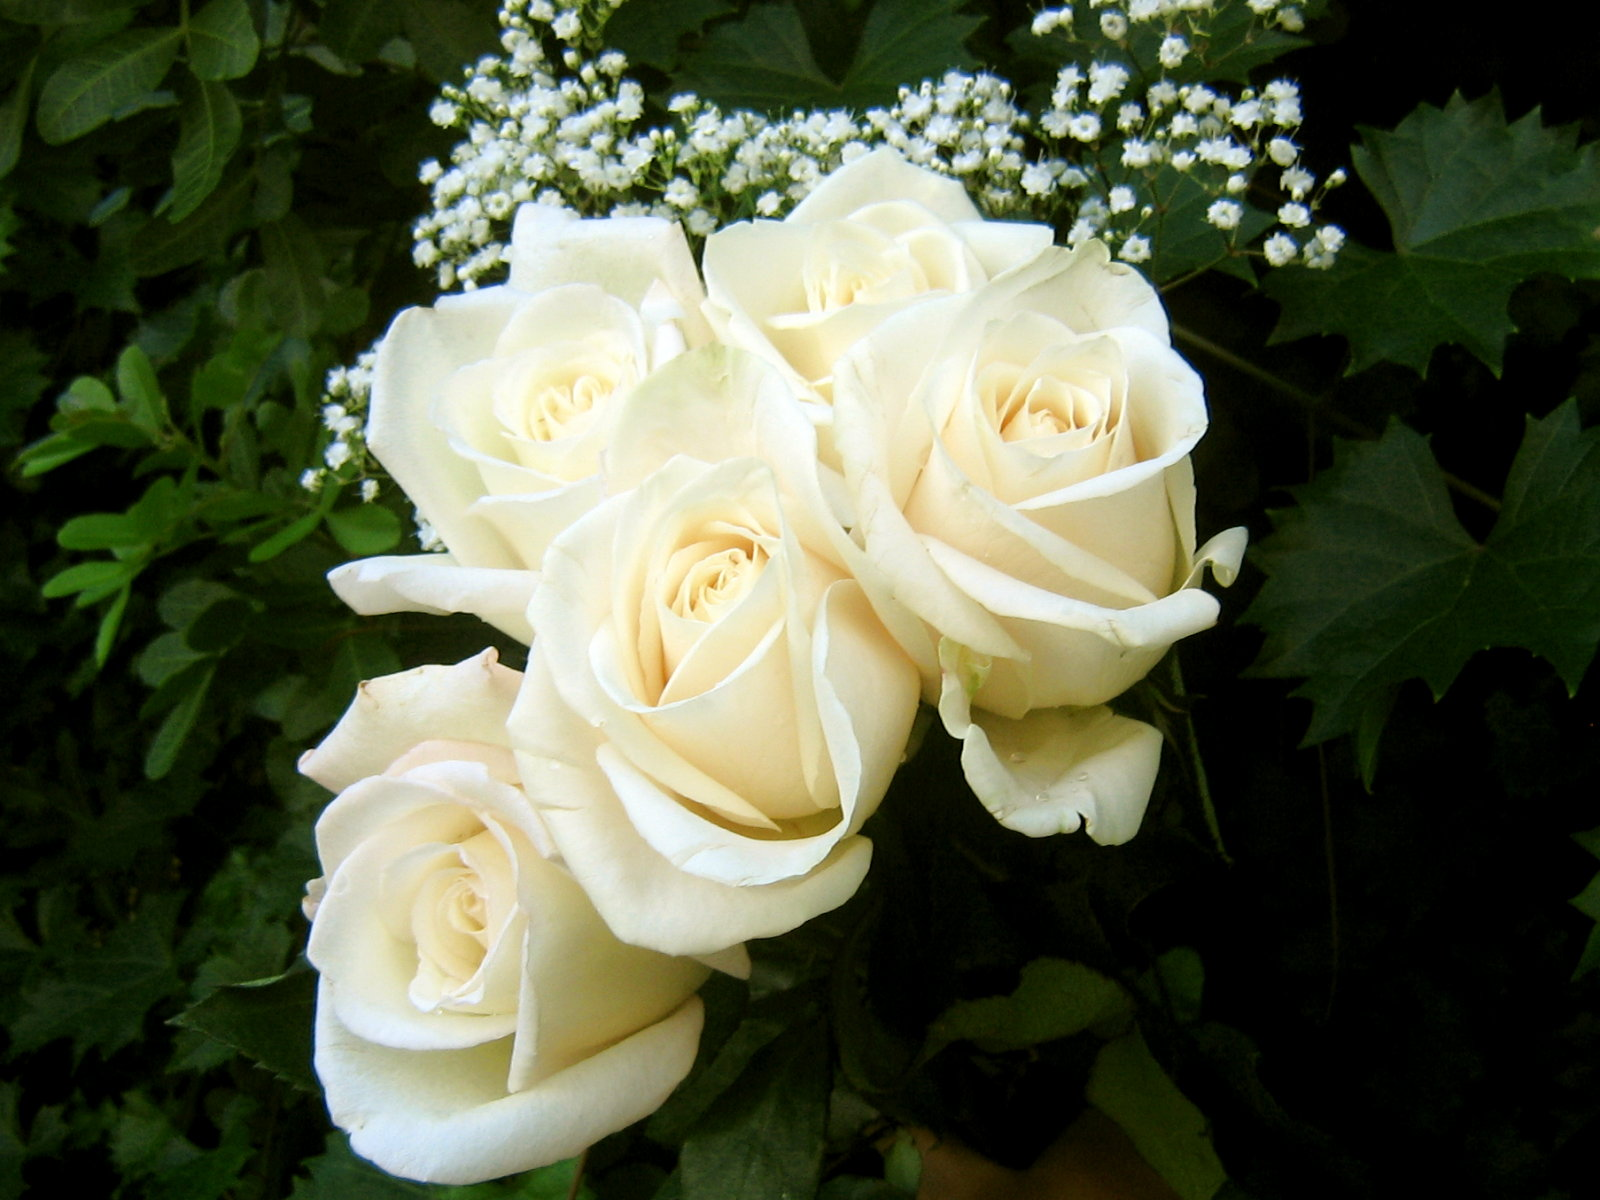 New White Rose Flowers Wallpapers - Entertainment Only  |Beautiful White Rose Flowers